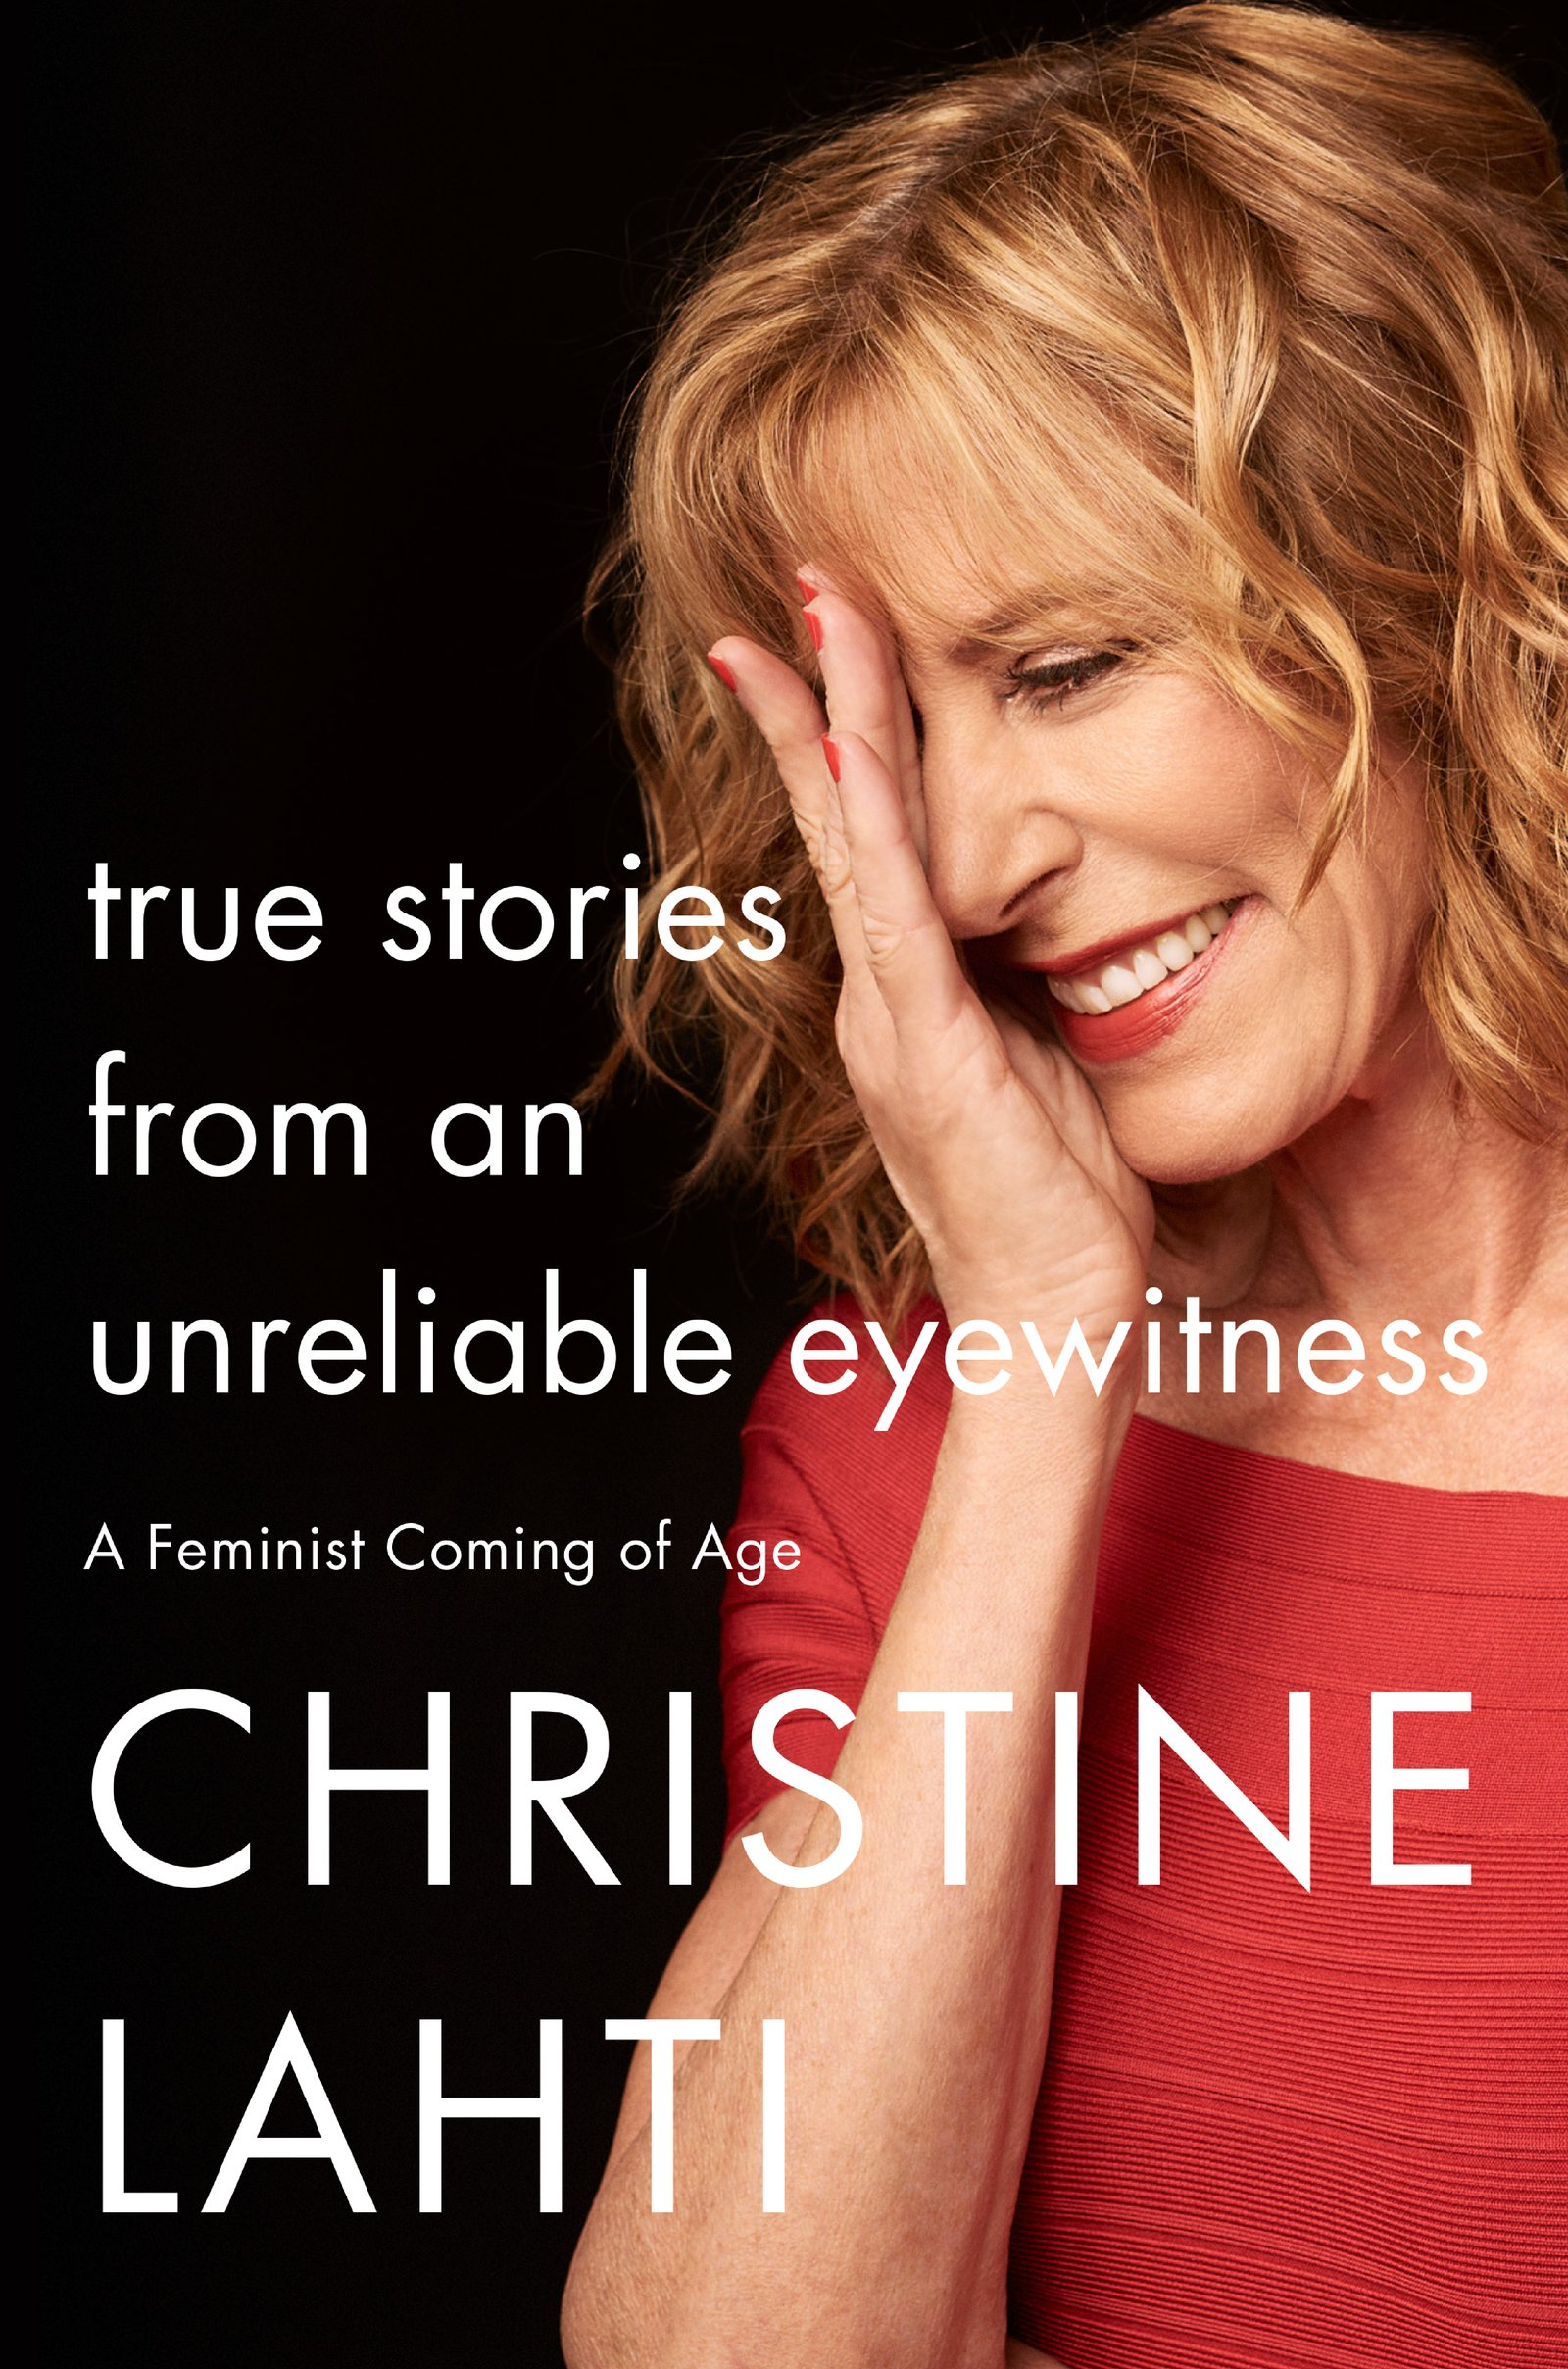 True Stories from an Unreliable Eyewitness: A Feminist Coming of Age